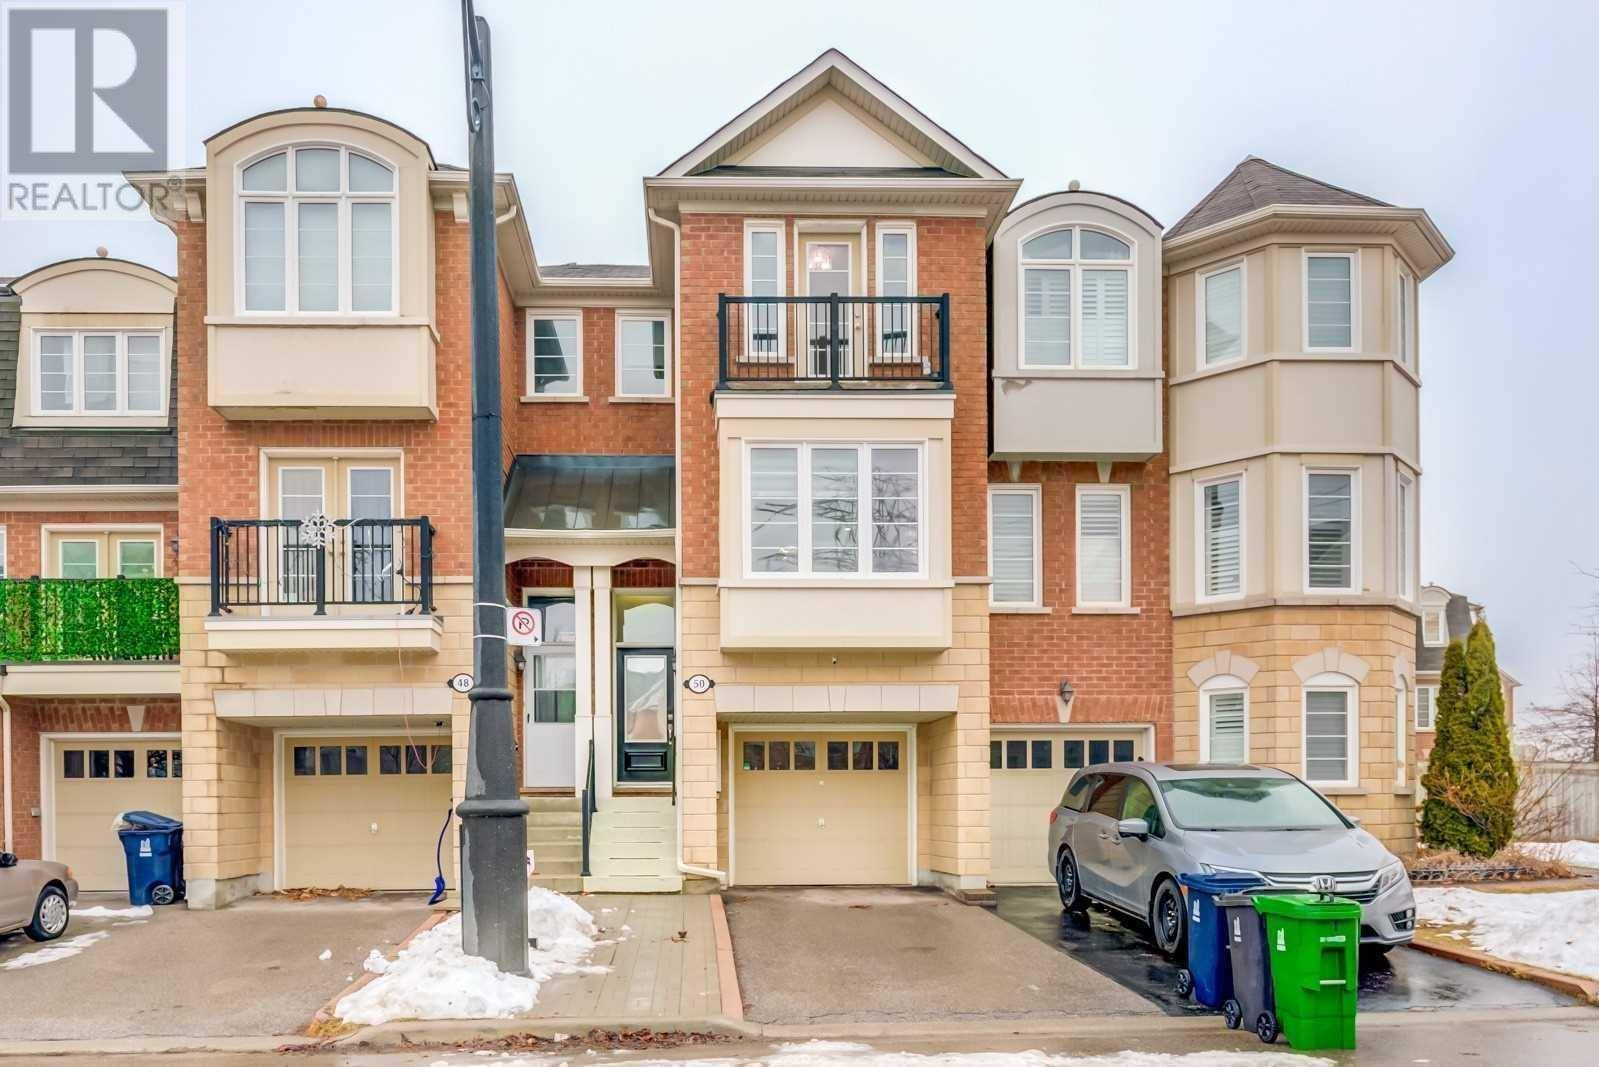 Townhouse for sale at 50 Winkler Te Toronto Ontario - MLS: E4743145